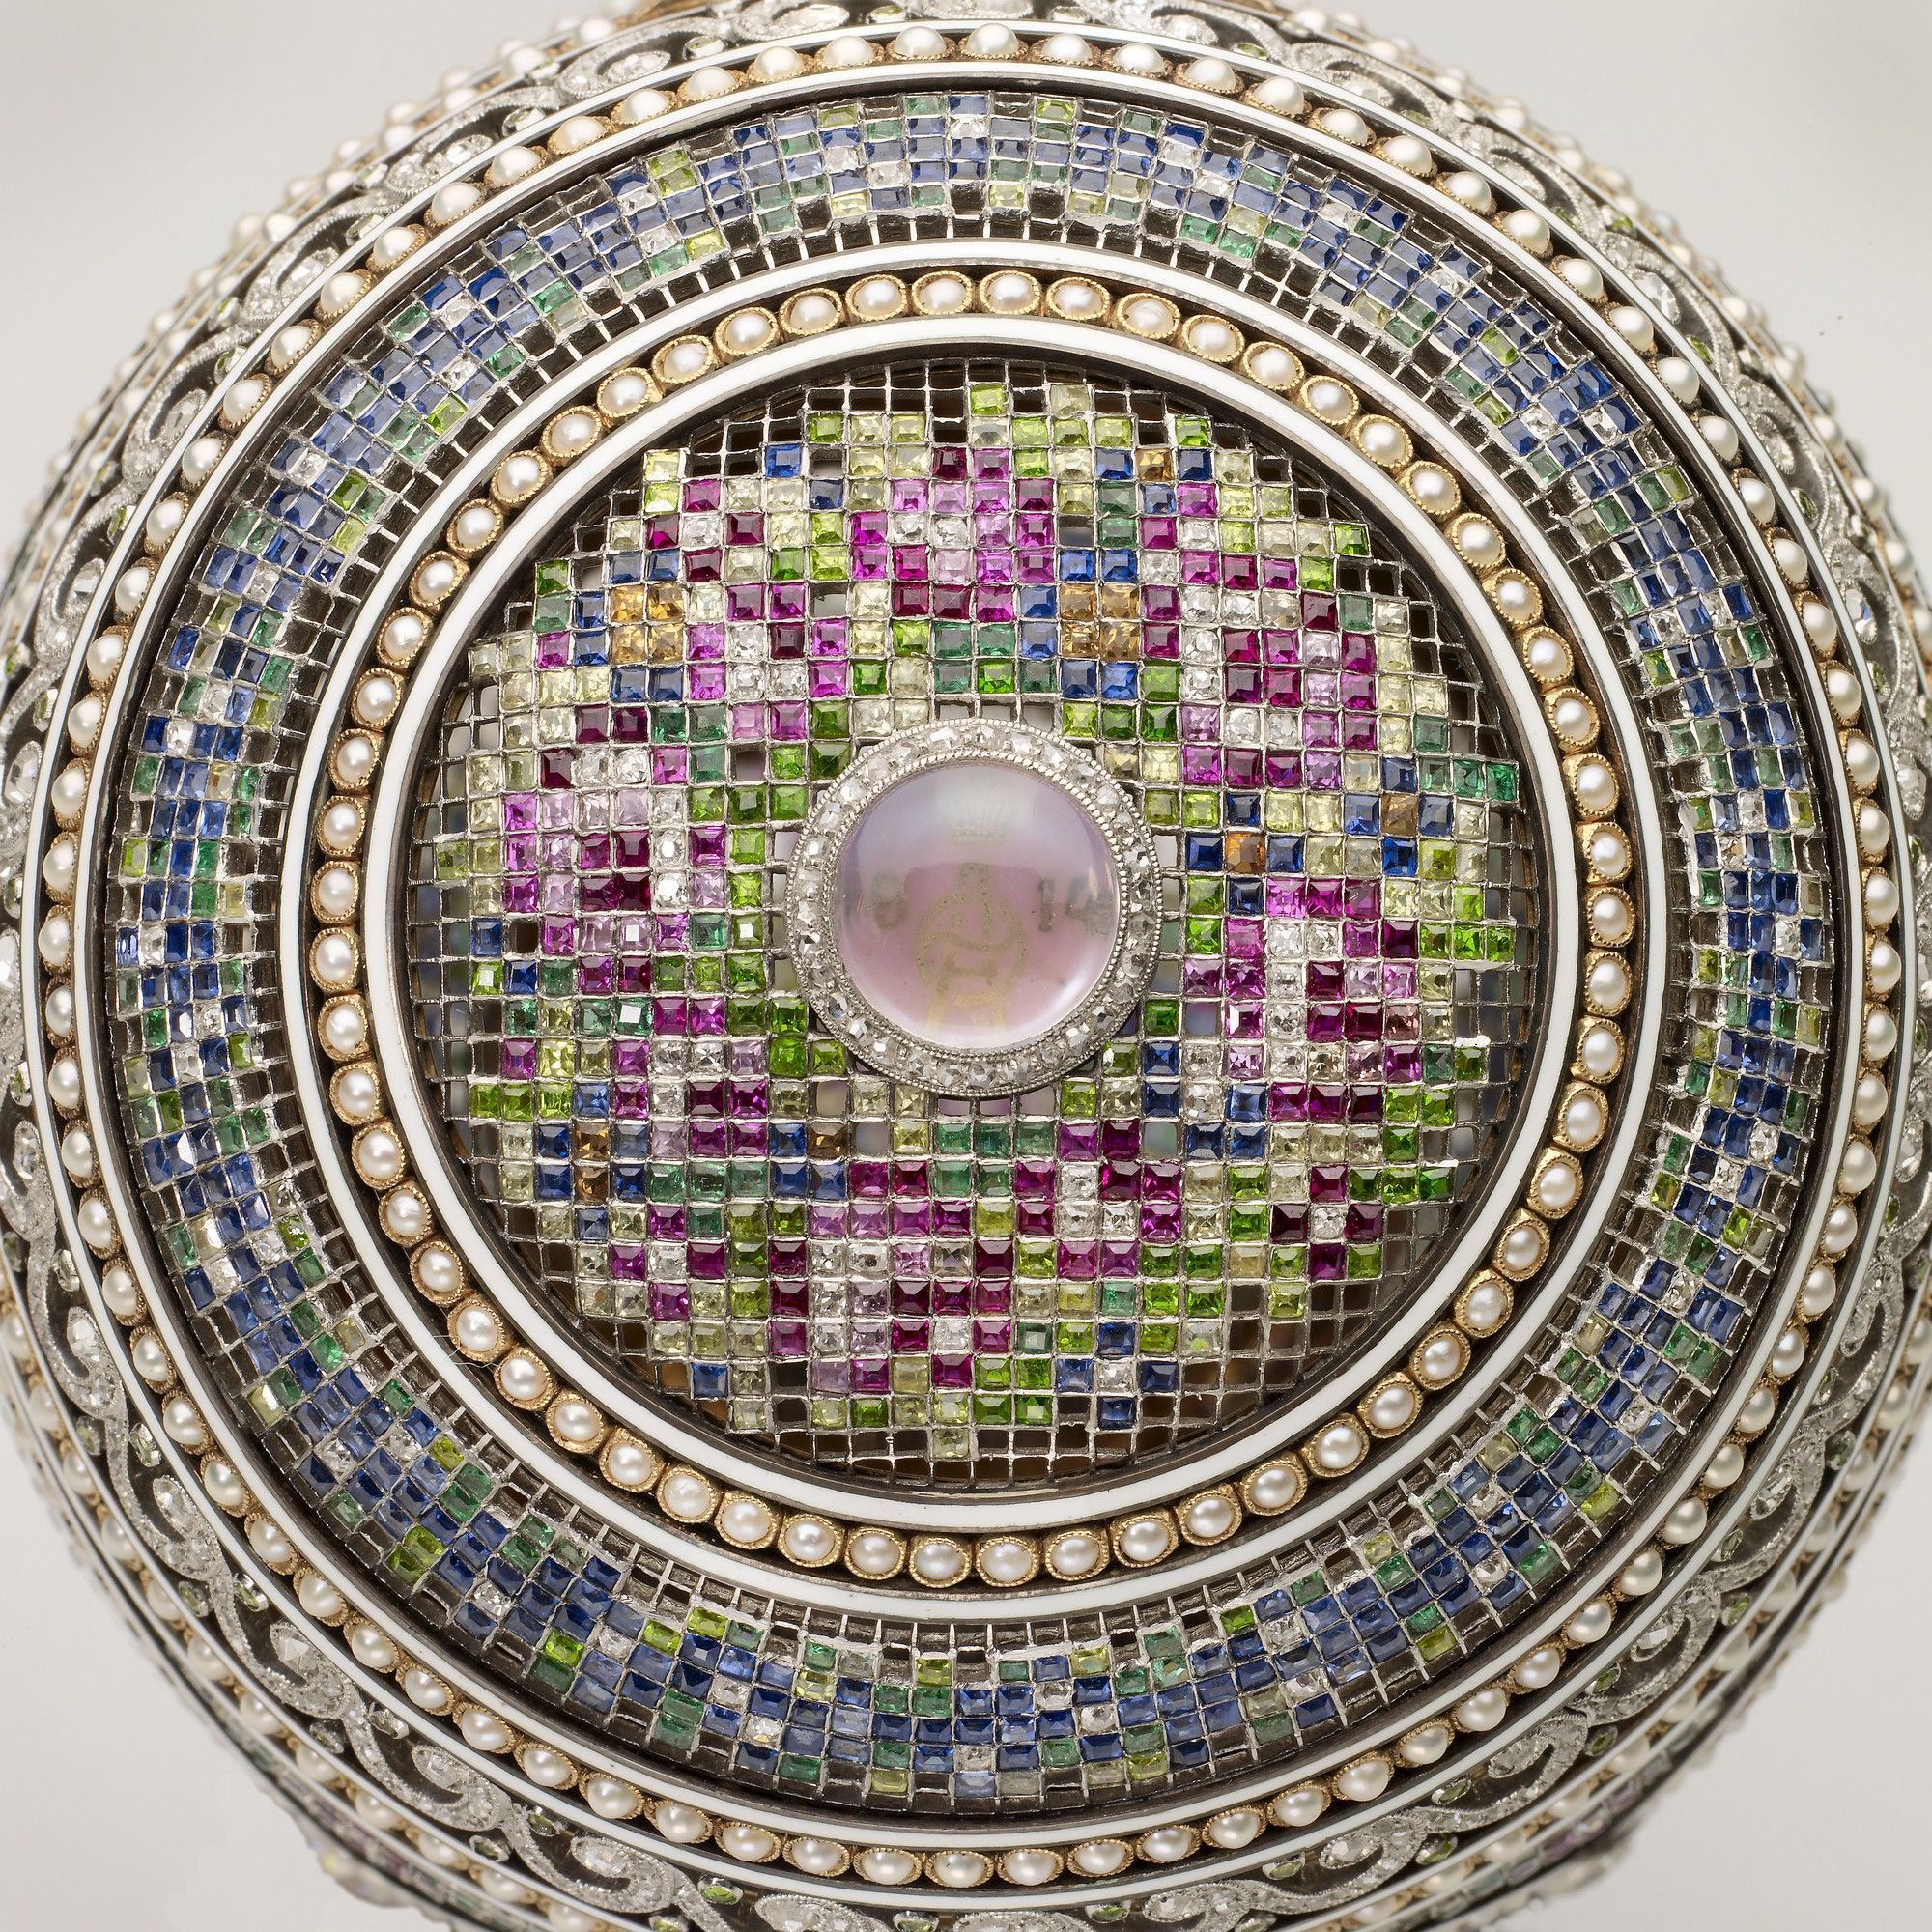 Top detail of the imperial mosaic egg easter 1914 faberge eggs one of the most sophisticated of fabergs imperial eggs is the mosaic egg the tsars 1914 easter gift to his wife the tsarinas monogram and are set negle Images